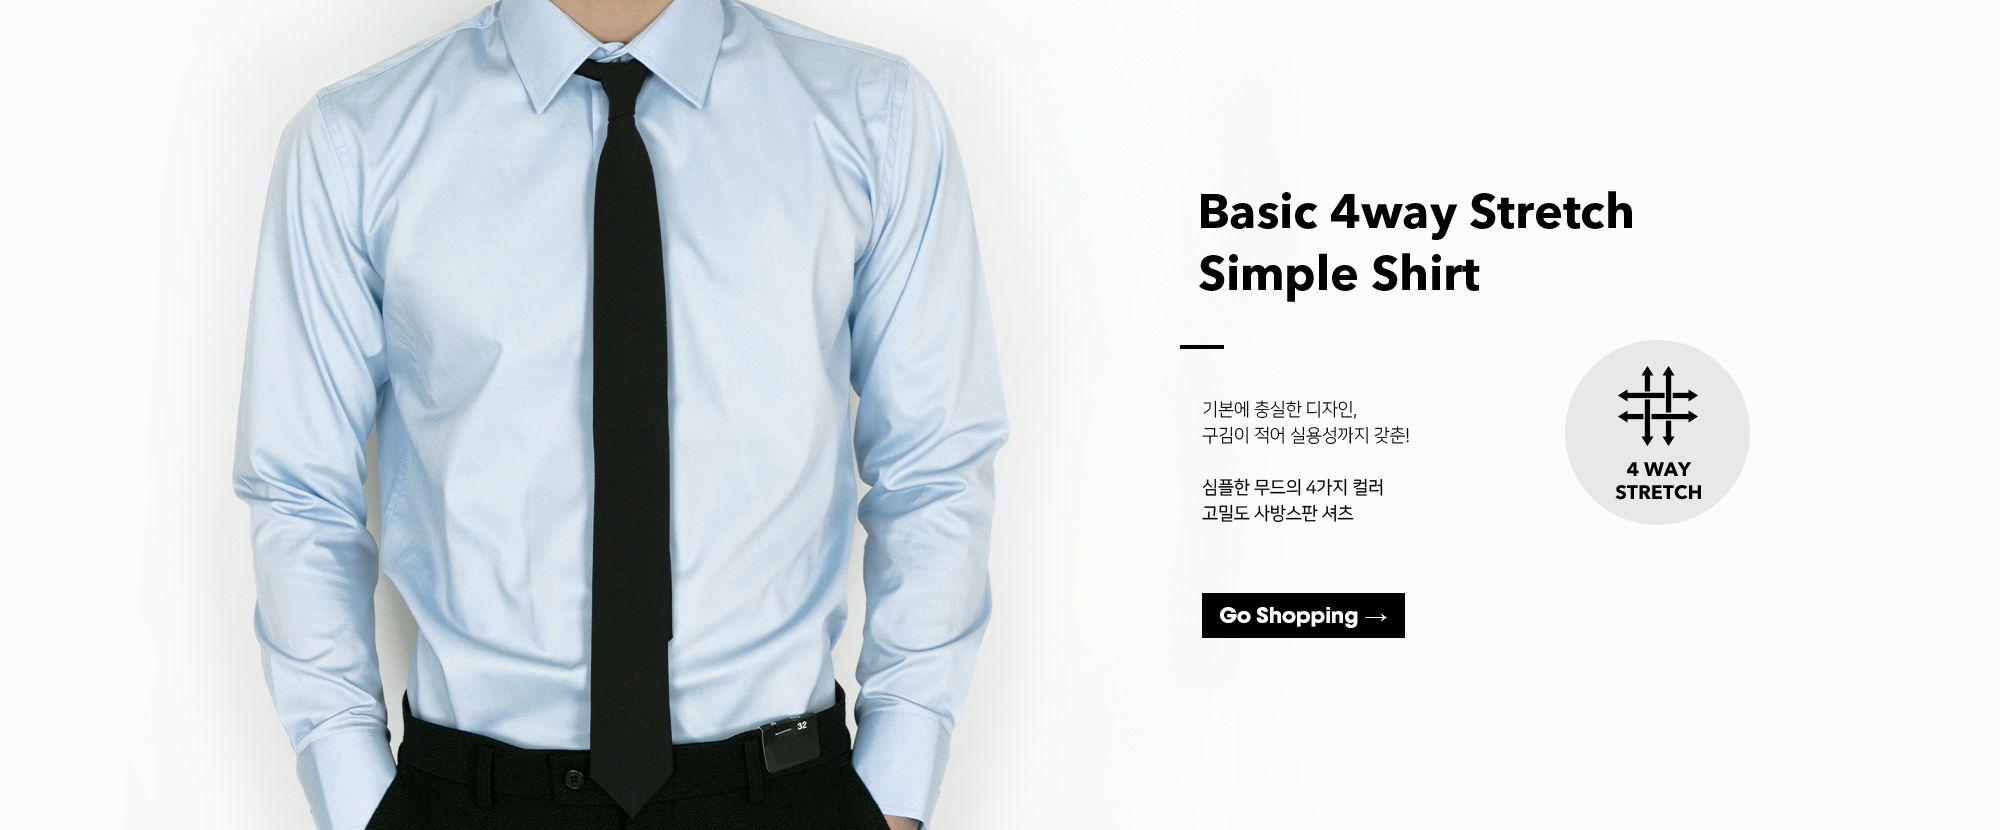 4way Stretch Basic Shirt